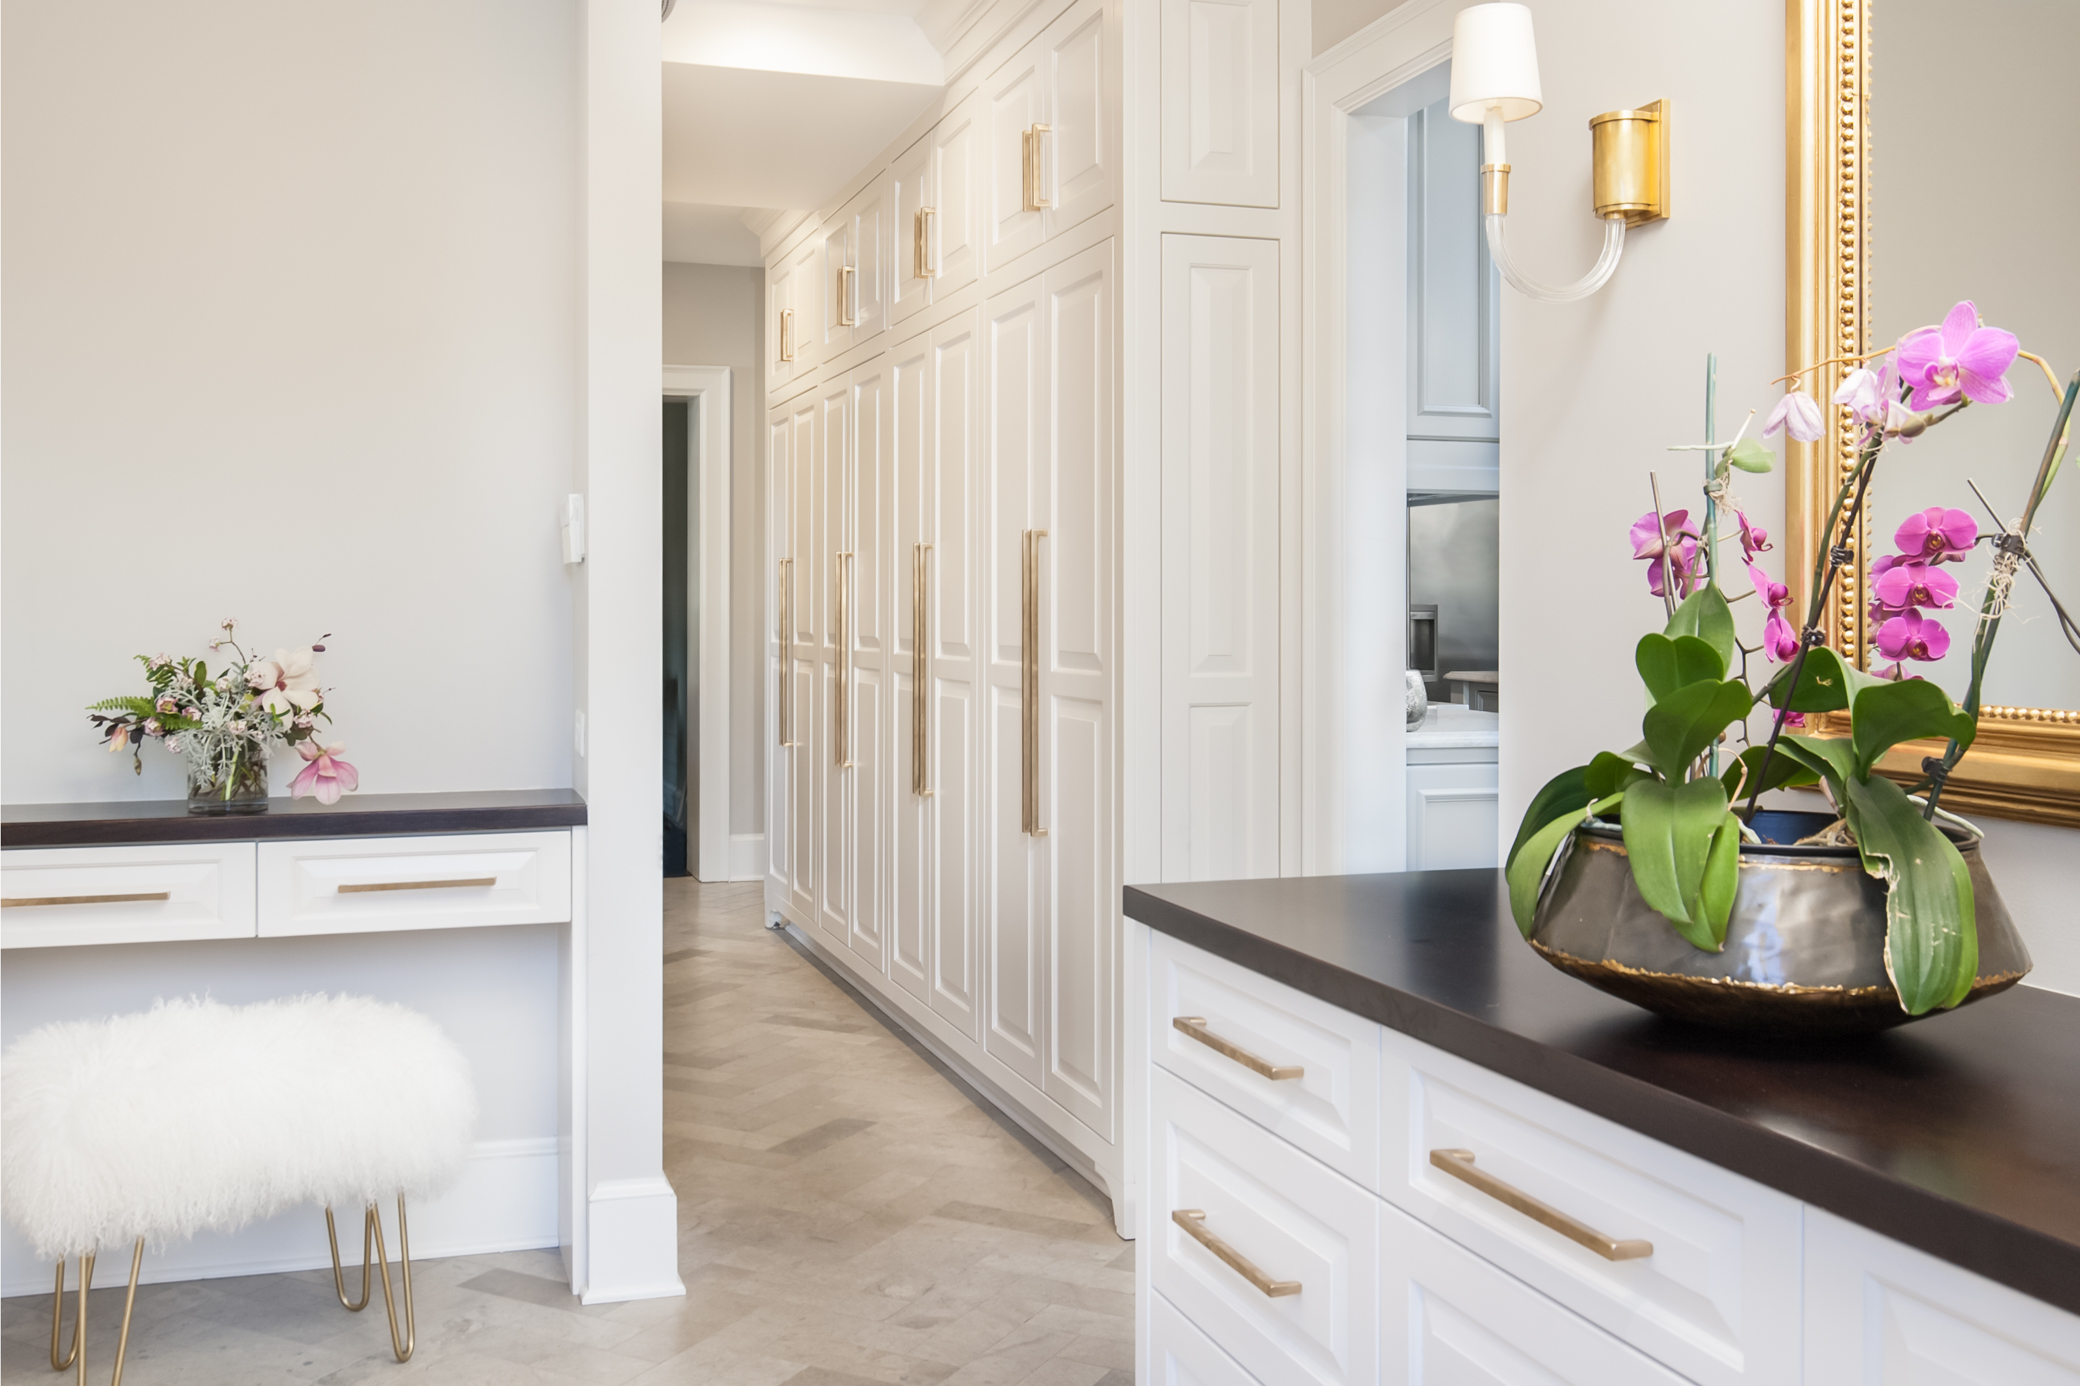 New cabinetry matching existing tall cabinets and new herringbone tile create a cohesive space.